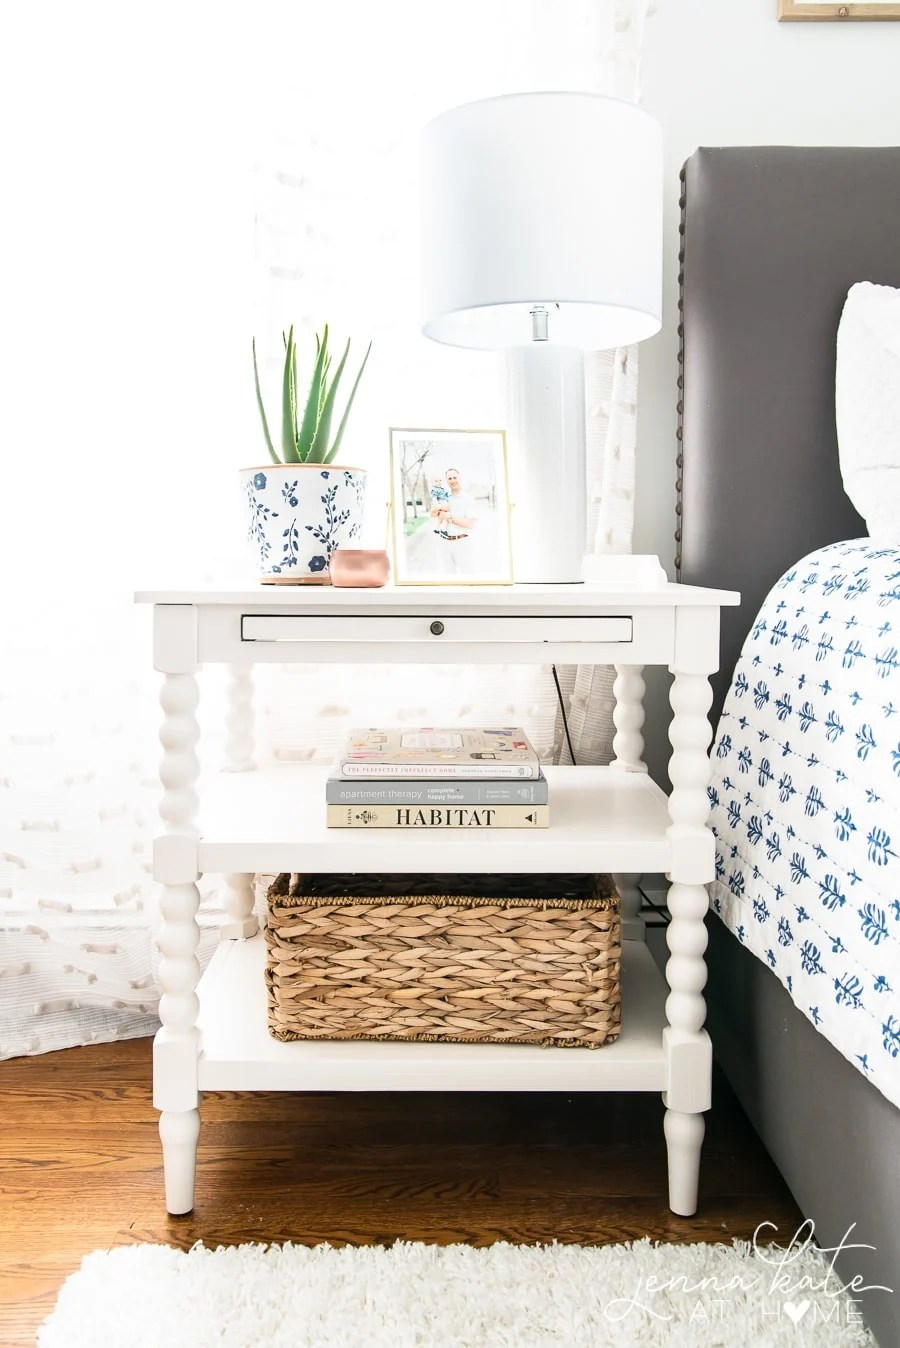 How to decorate the top of a nightstand